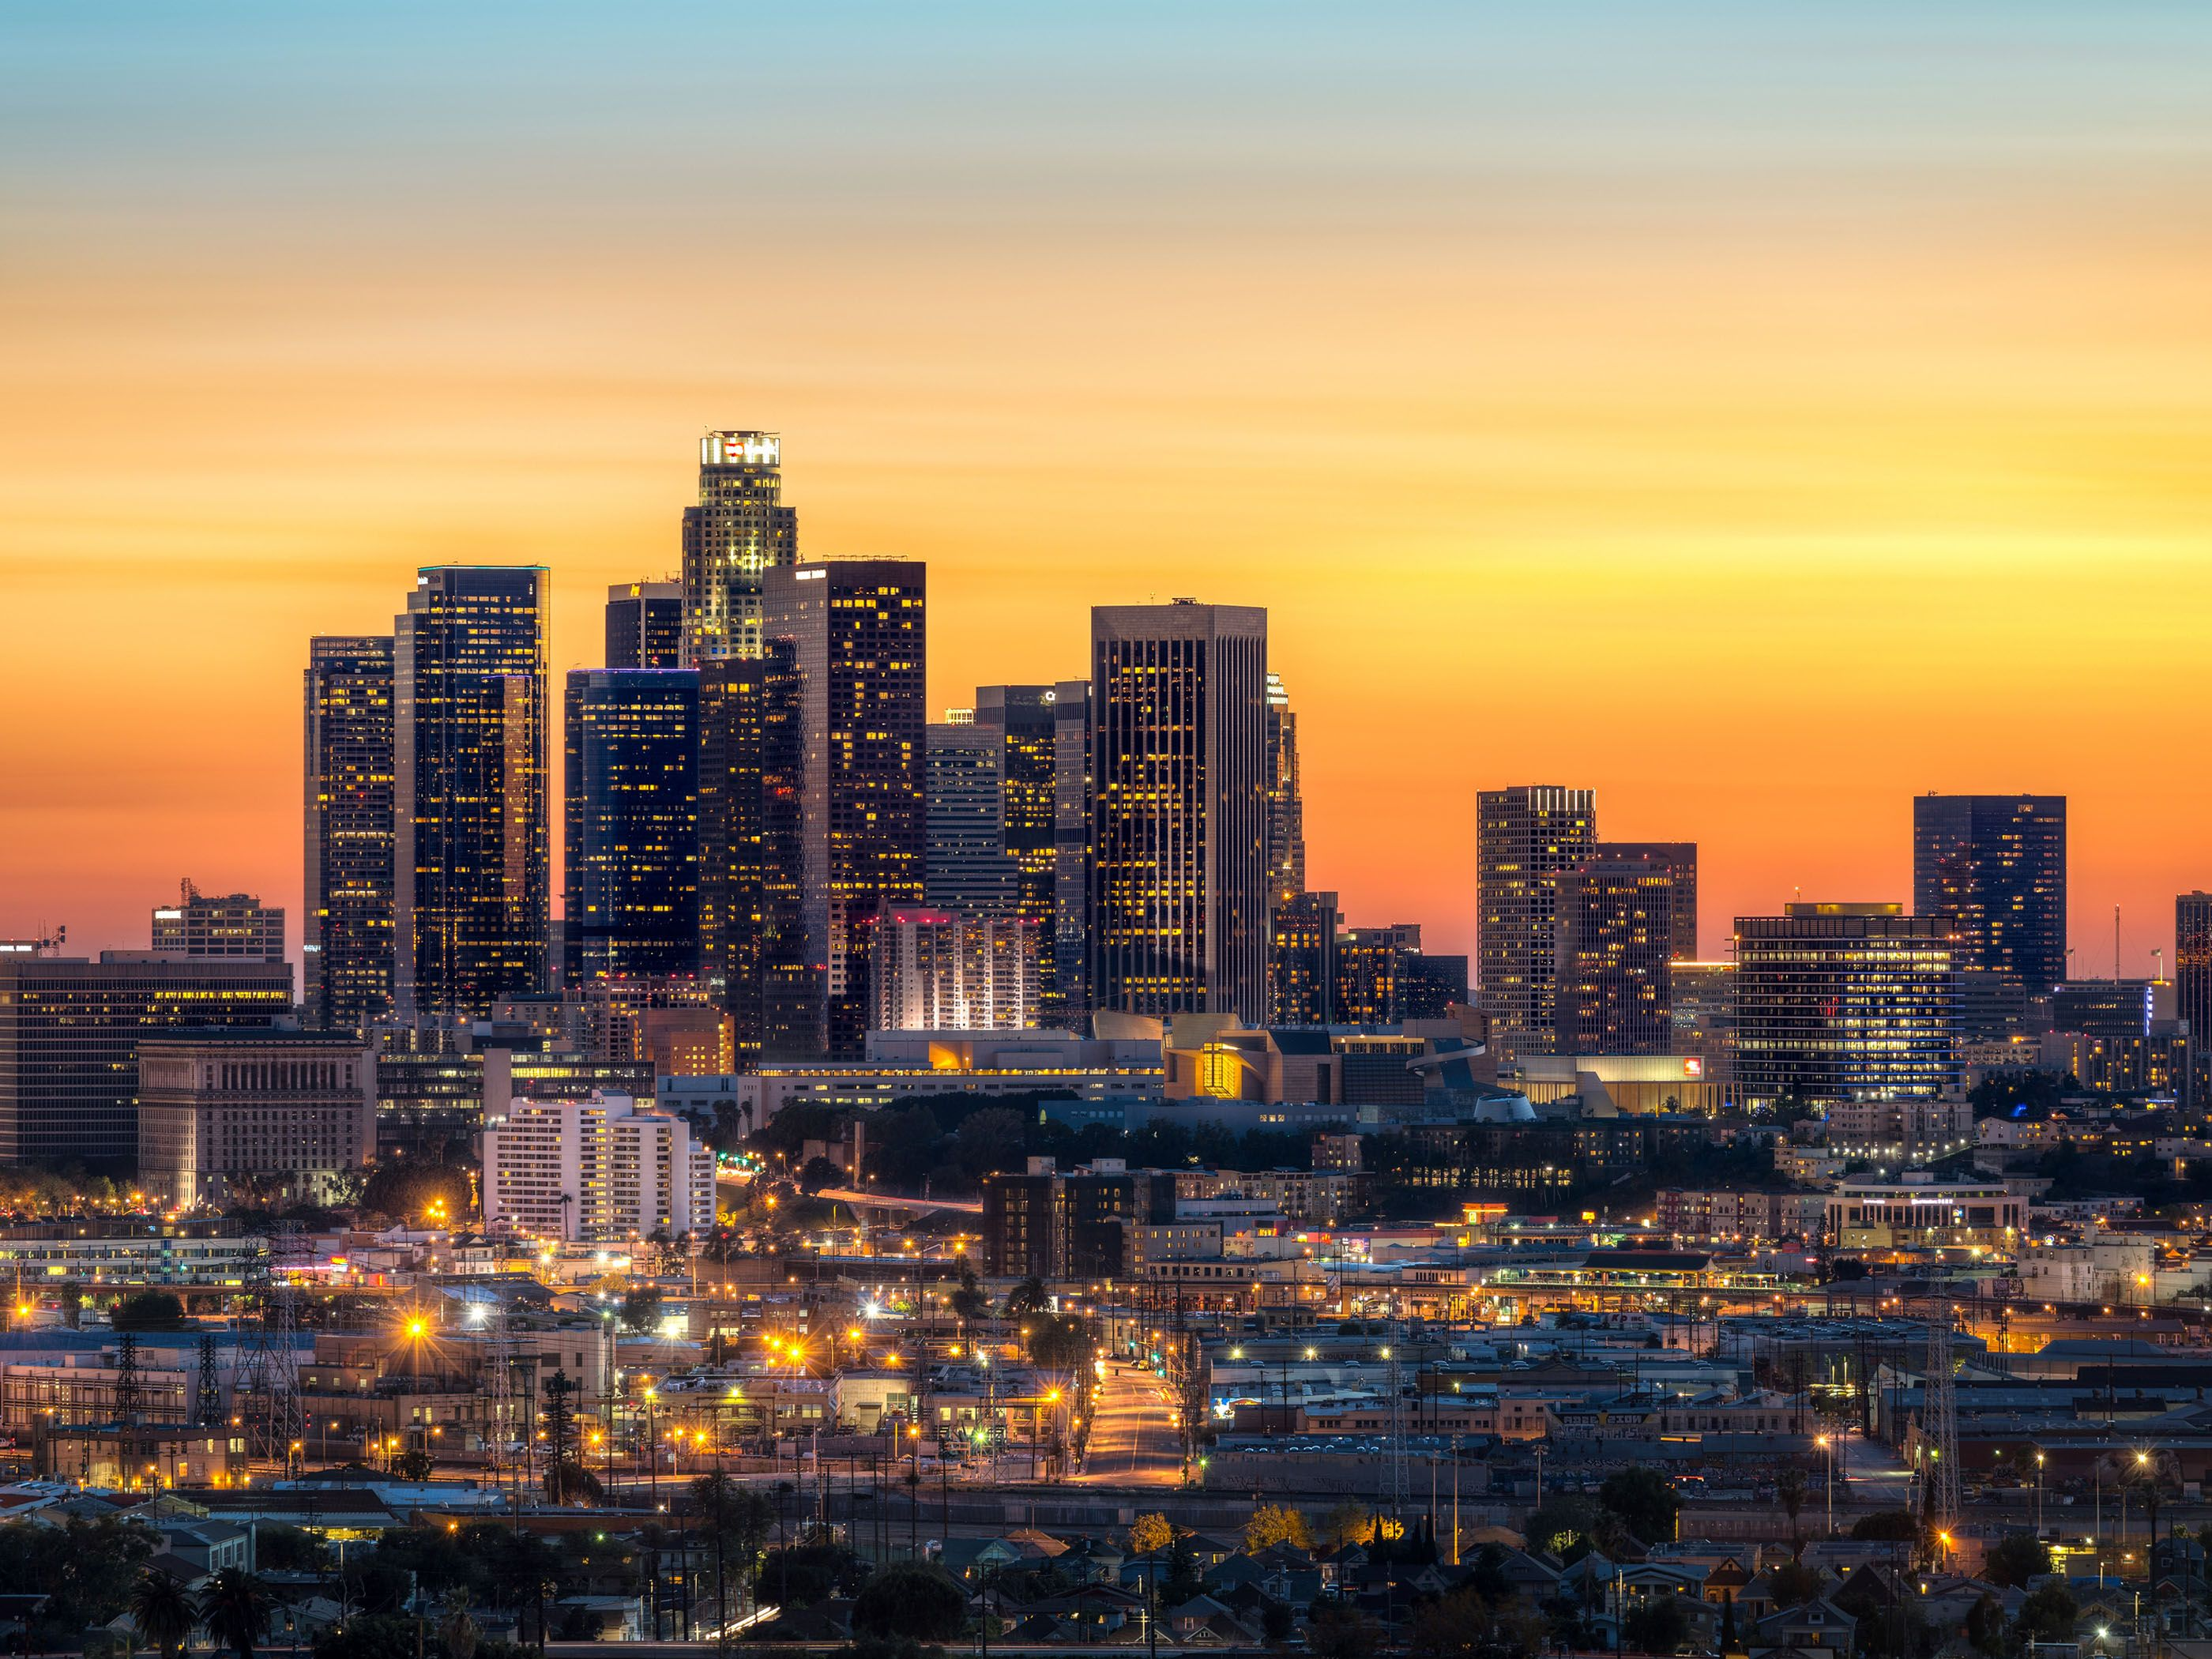 Downtown La At Night Hd Desktop Wallpaper High Definition Los Angeles Skyline Los Angeles Sunset Skyline